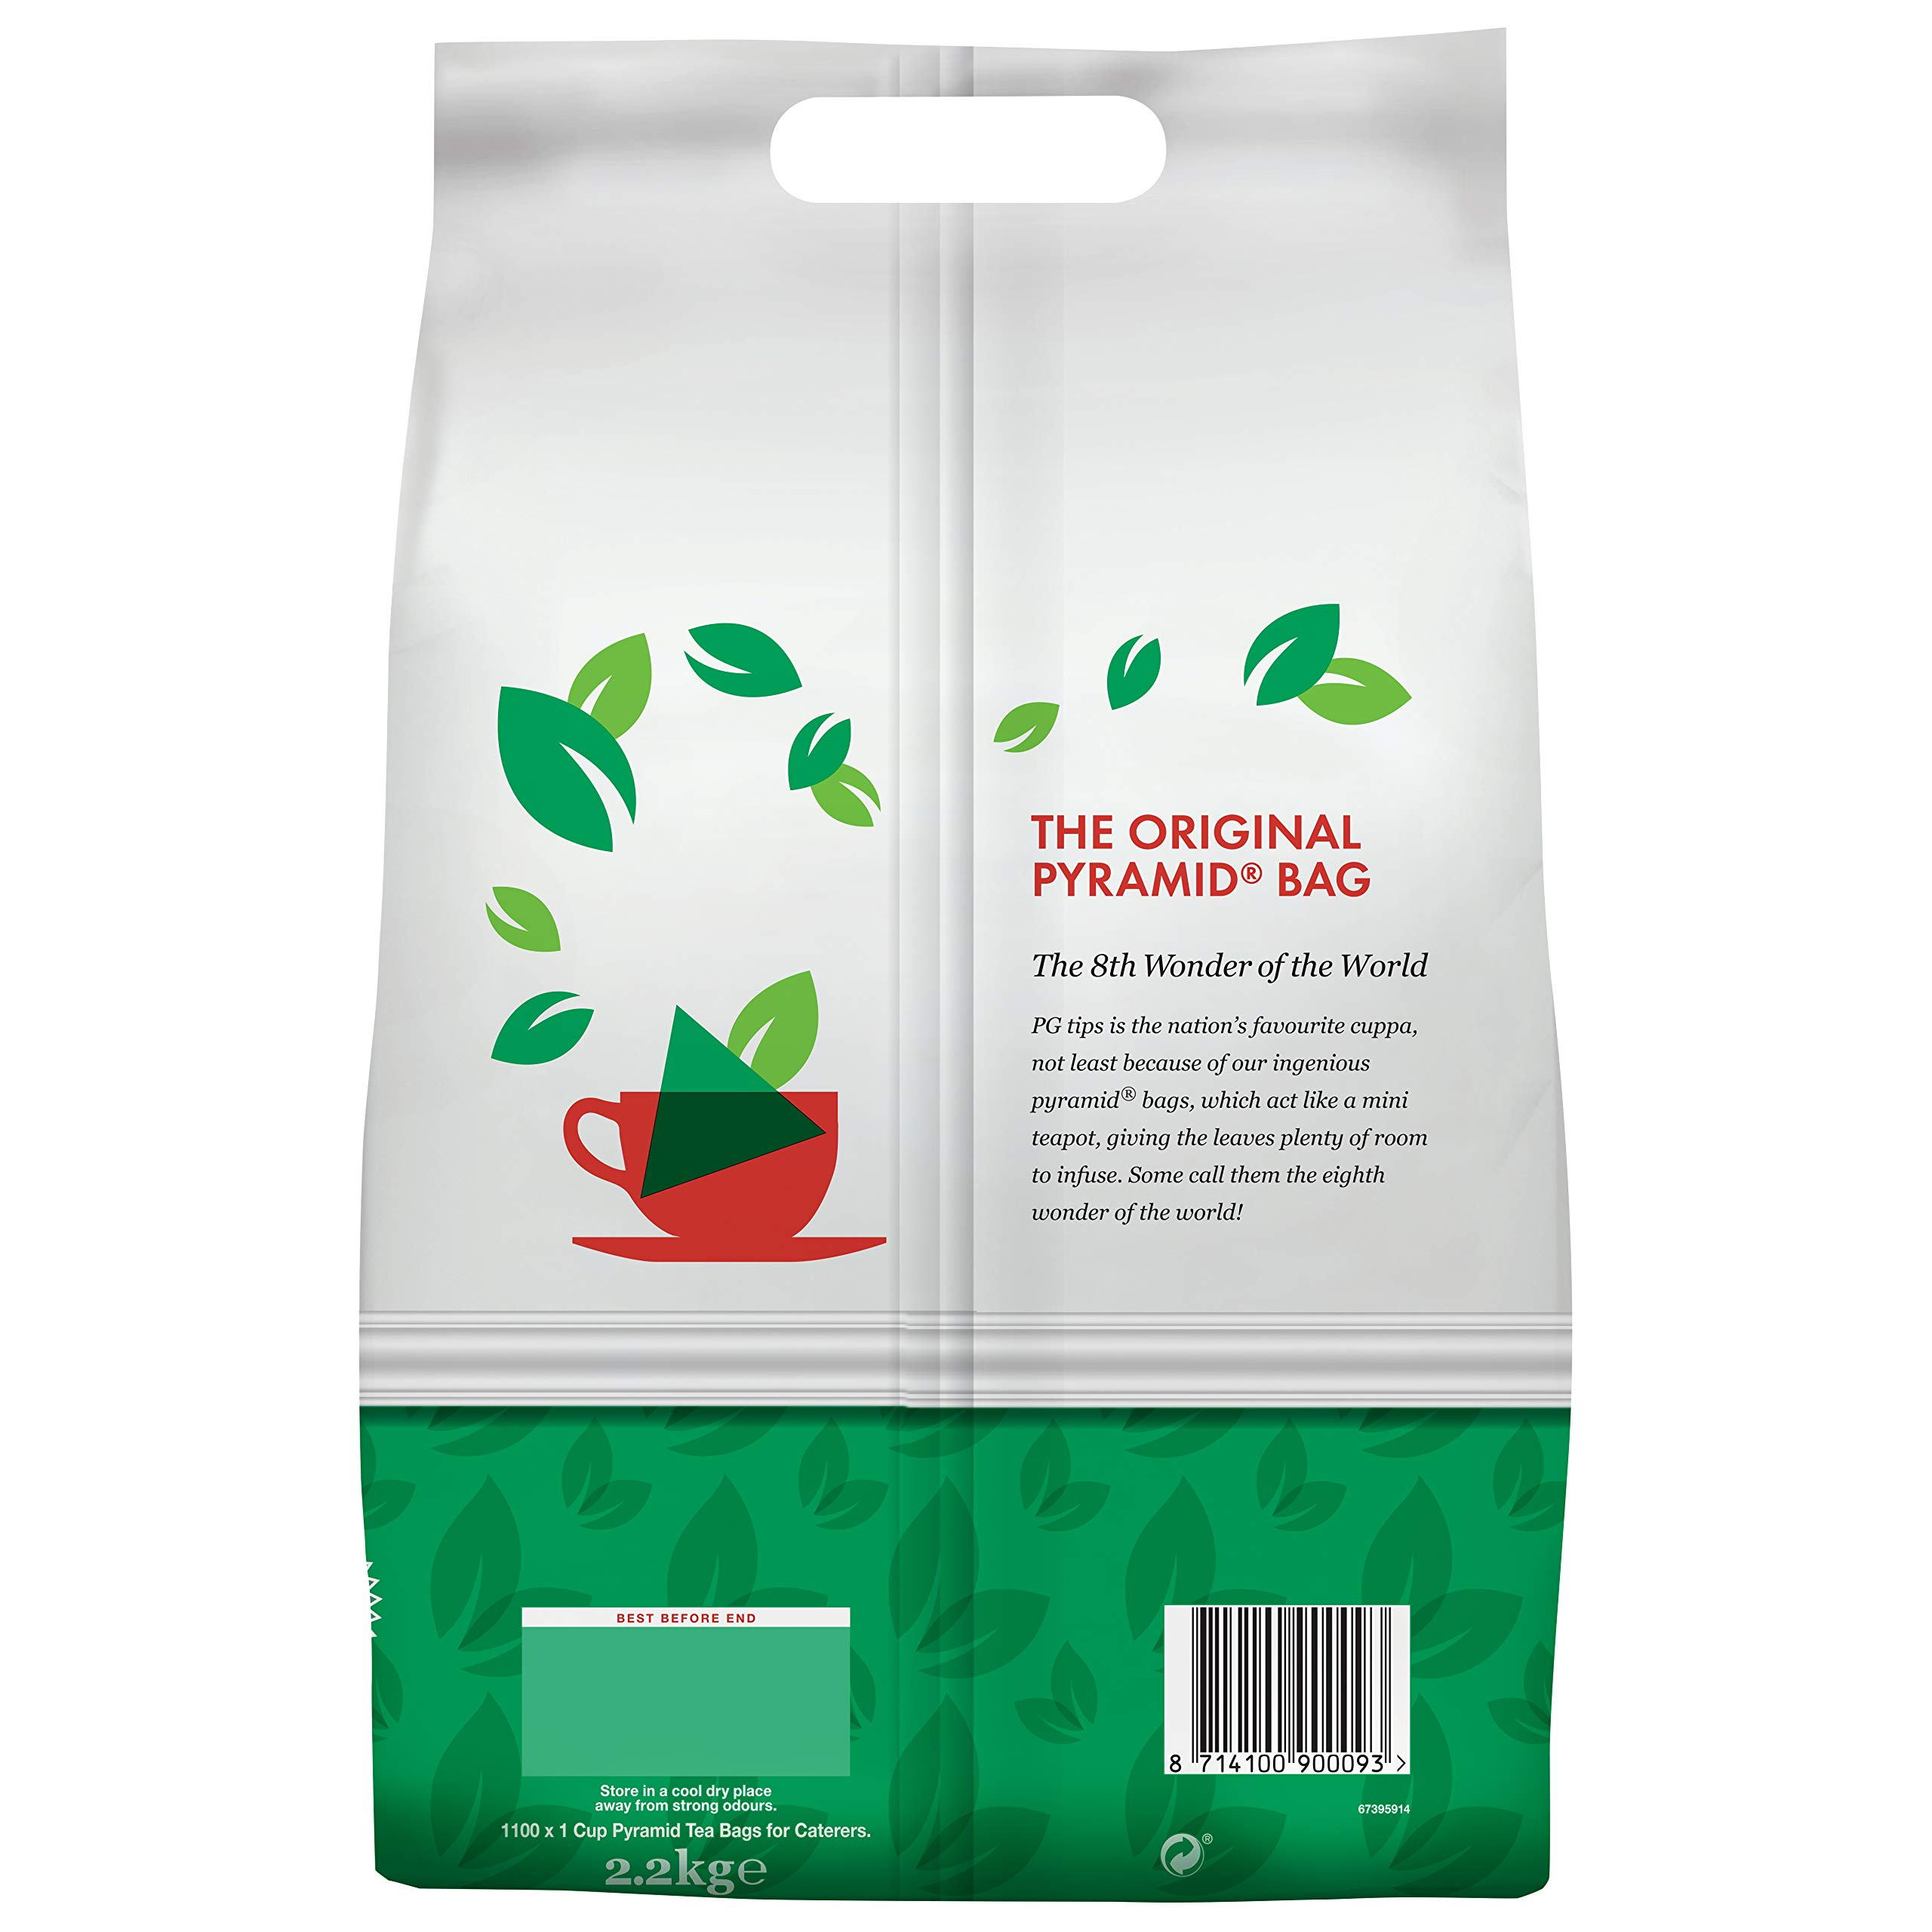 PG Tips One Cup Pyramid Tea Bags (Pack of 1, Total 1100 Tea Bags) by PG Tips (Image #3)